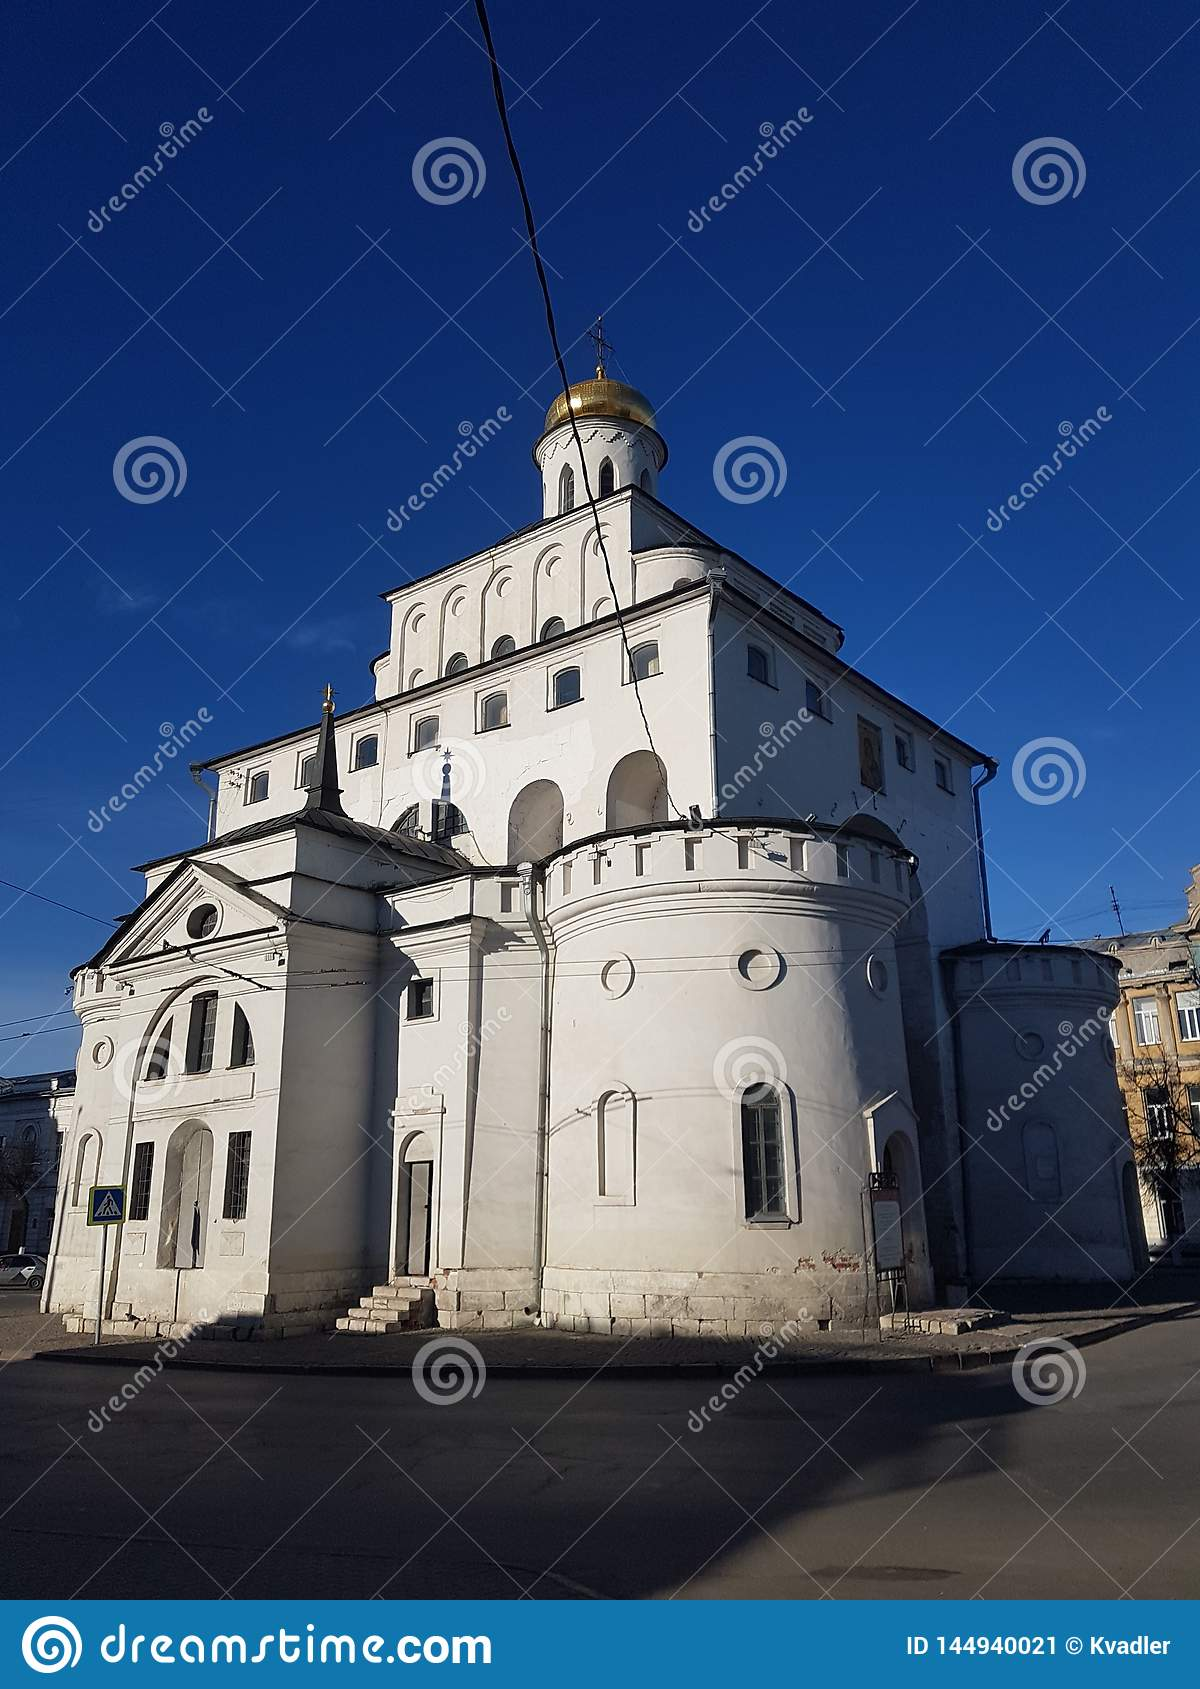 The Golden Gate of Vladimir constructed between 1158 and 1164, Russia in the Golden Ring of Russia